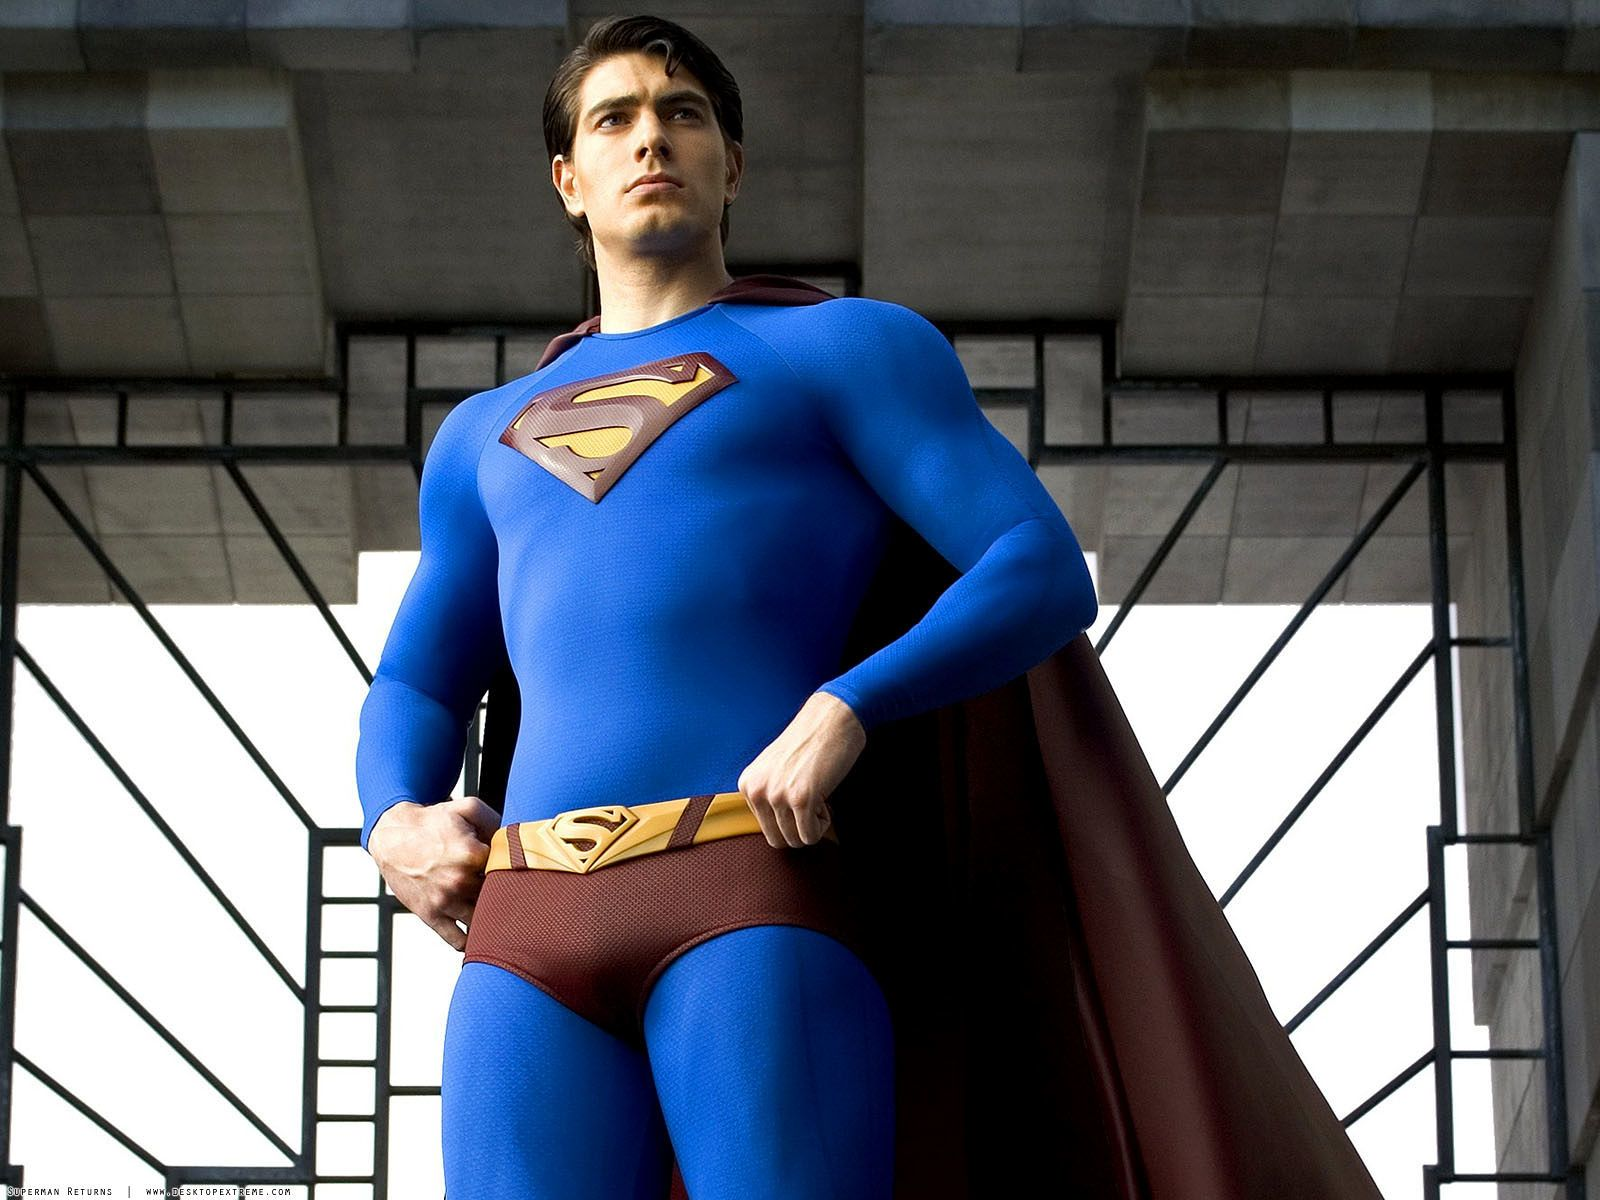 brandon routh workout - photo #36